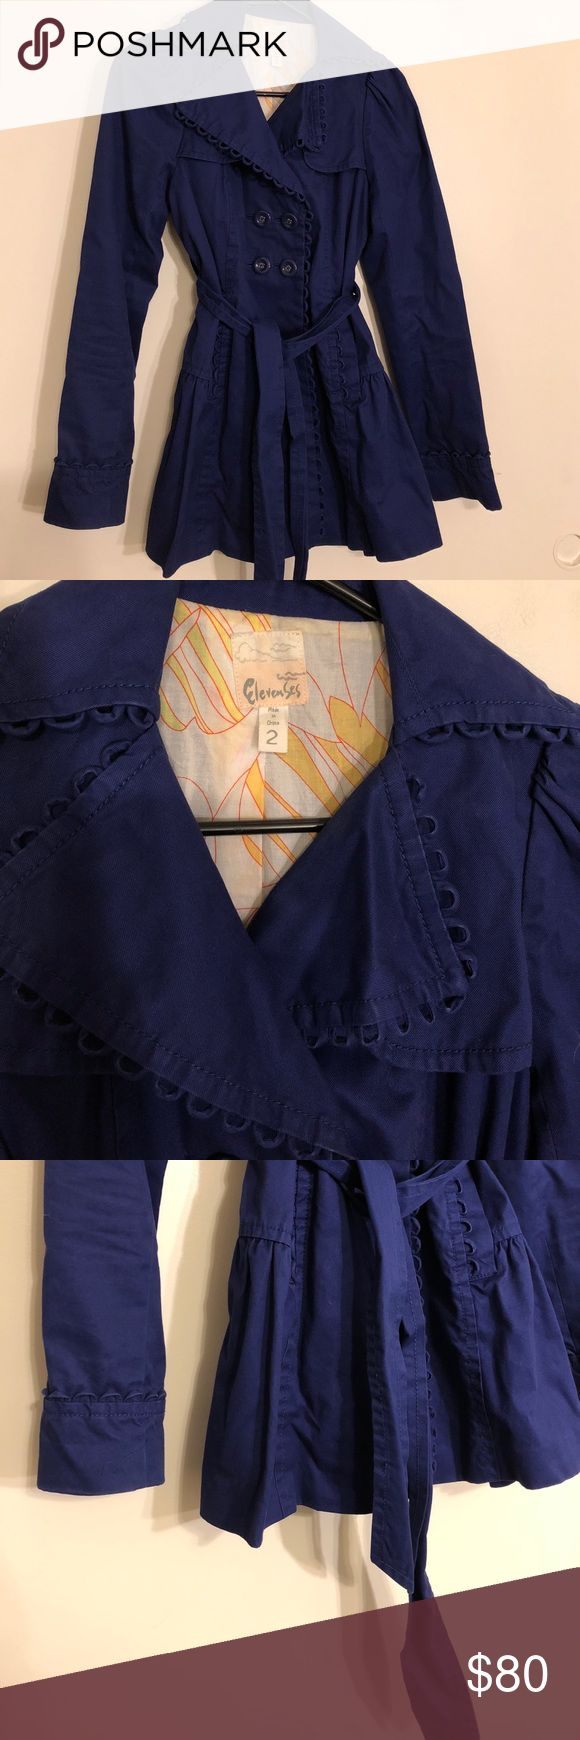 Anthropologie Peacoat Elevenses. Excellent used condition with no flaws. Little signs of wear on the edge of the sleeves. No fading in the color. Rich royal blue. Anthropologie Jackets & Coats Pea Coats